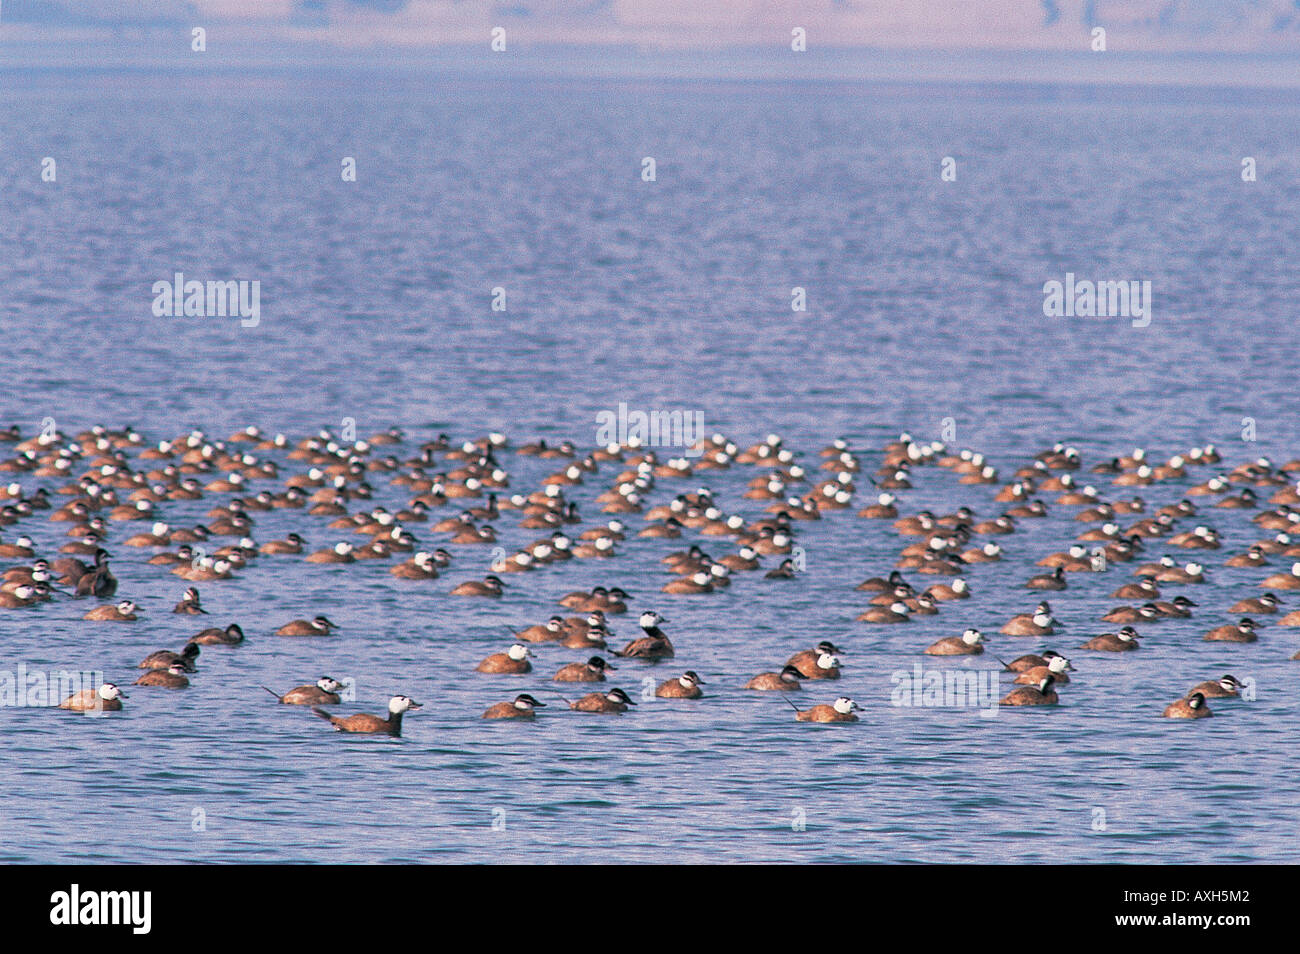 Endangered white headed ducks Oxyura Leucocephala in Burdur Lake Turkey - Stock Image